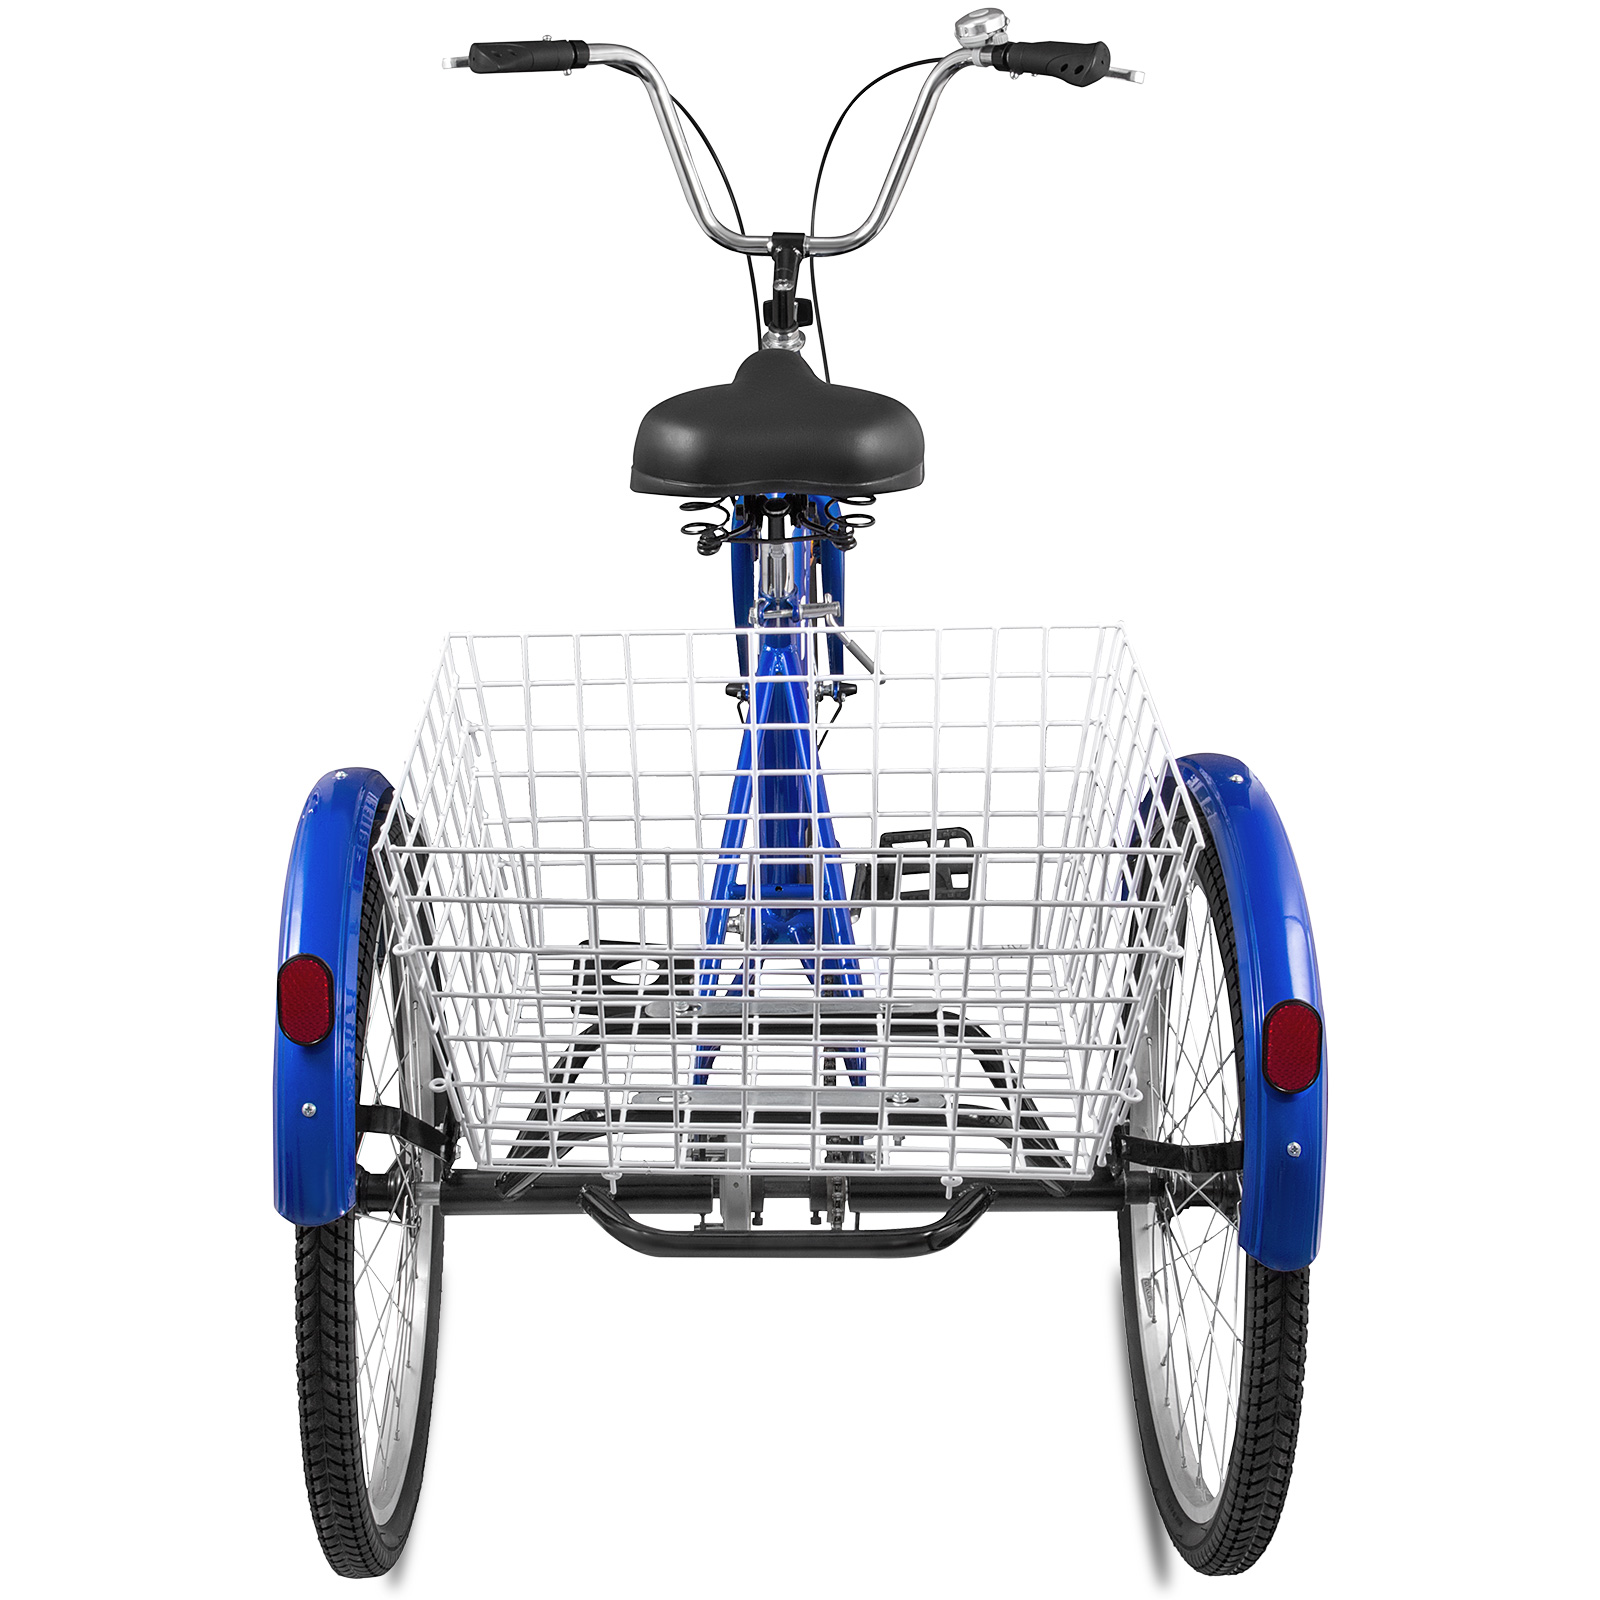 20-24-26-034-Adult-Tricycle-1-7-Speed-3-Wheel-Large-Basket-For-Shopping-Optional thumbnail 108